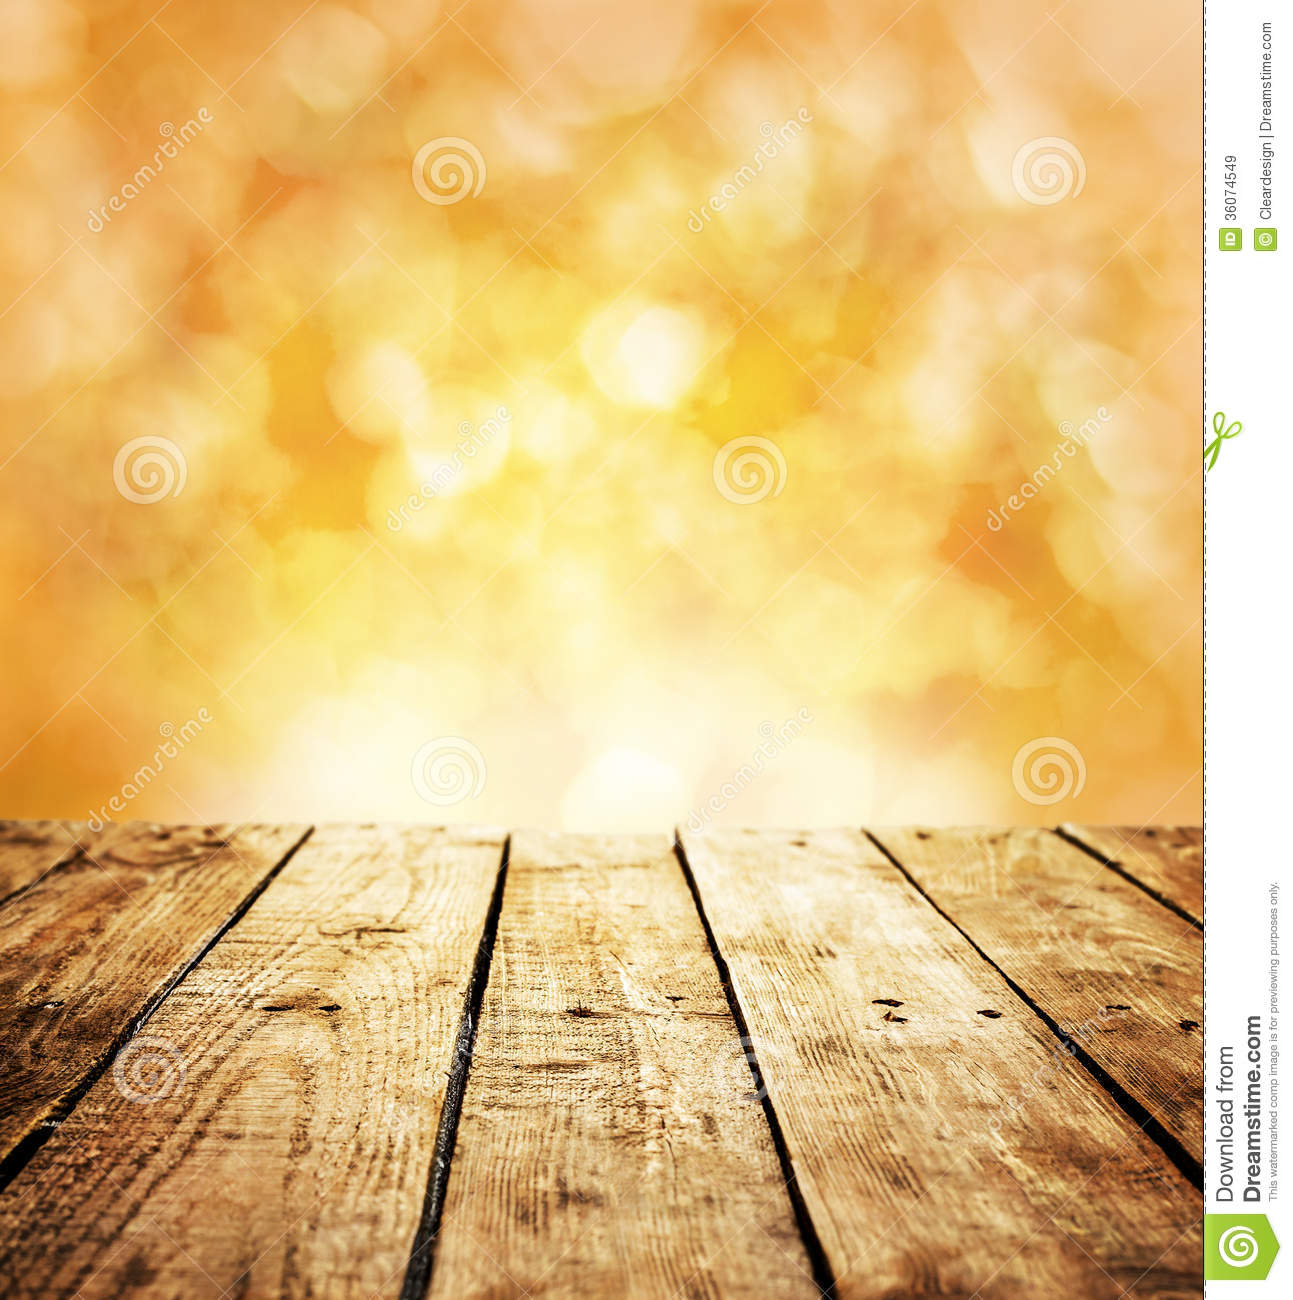 ... table in perspective on warm orange abstract bokeh - outdoor in the